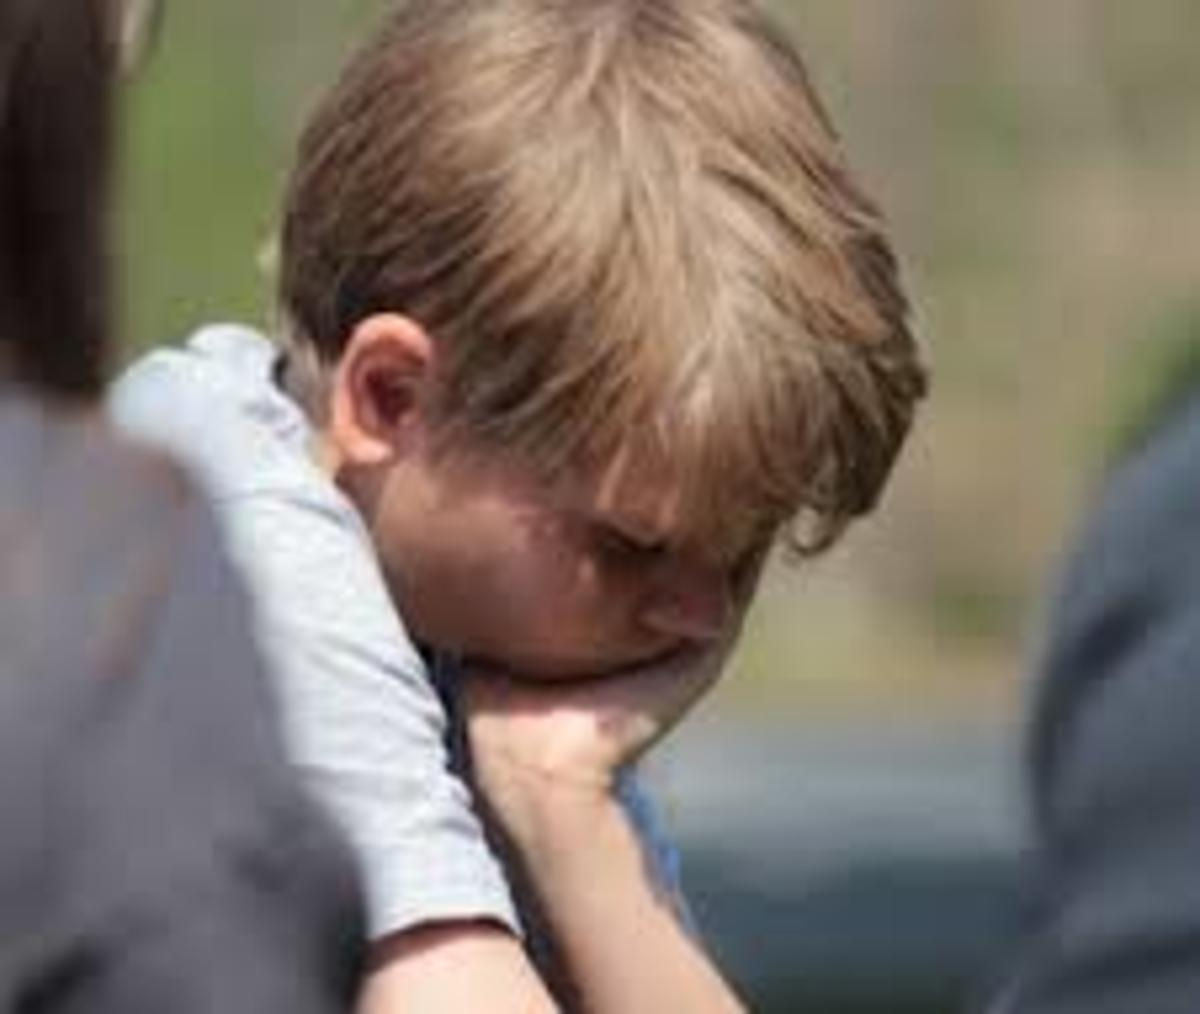 The effects of being scapegoated by their parents are myriad.Some children have abysmal self-esteem. They feel as if they are nothing of consequence. Many become abject failures in life.